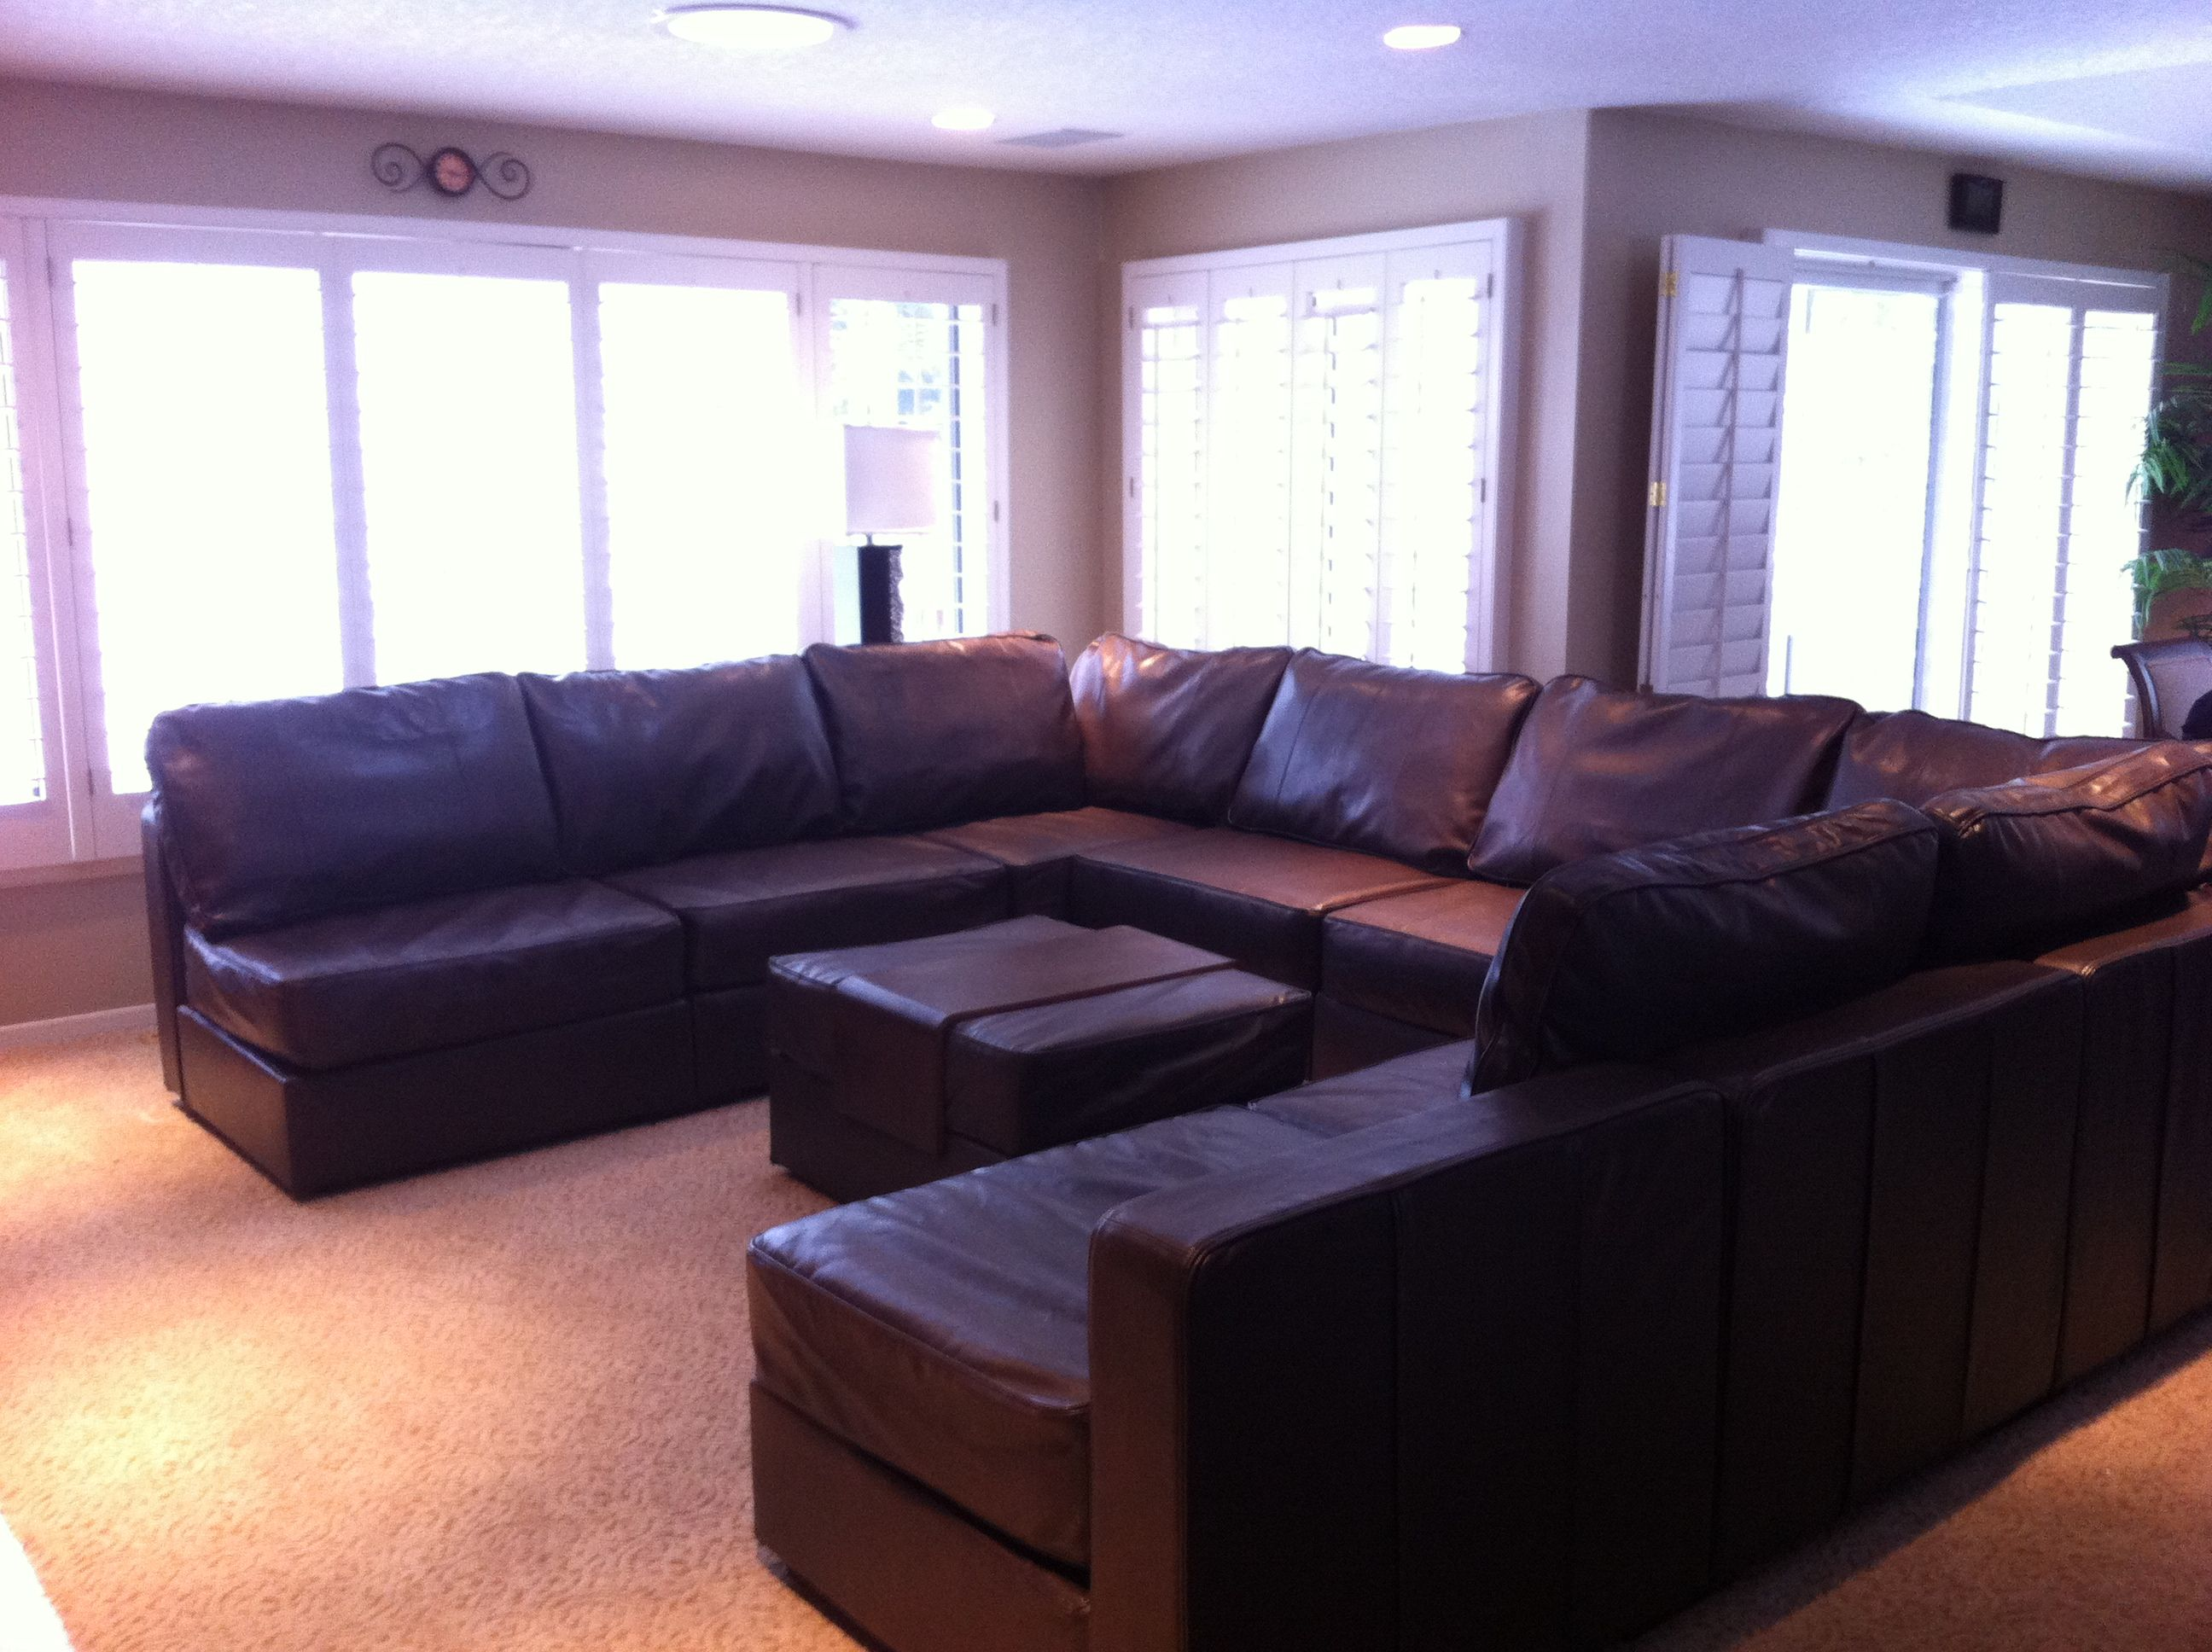 6s Glove Leather U Shaped Couch Set Up With A Matching Ottoman In The Middle Lovesac